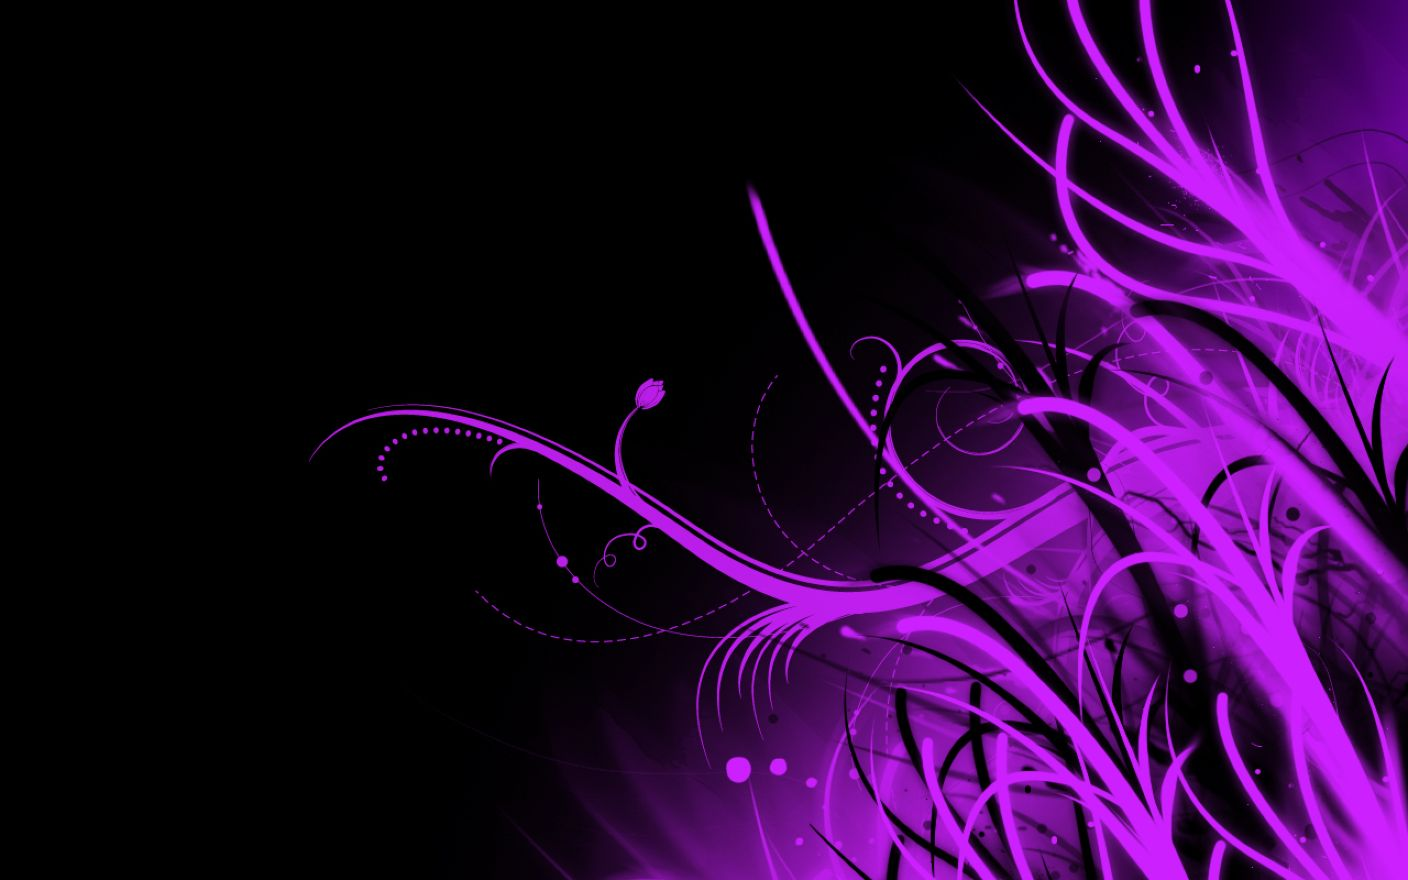 Download free HD Abstract Purple 1280×800 Wallpaper, image